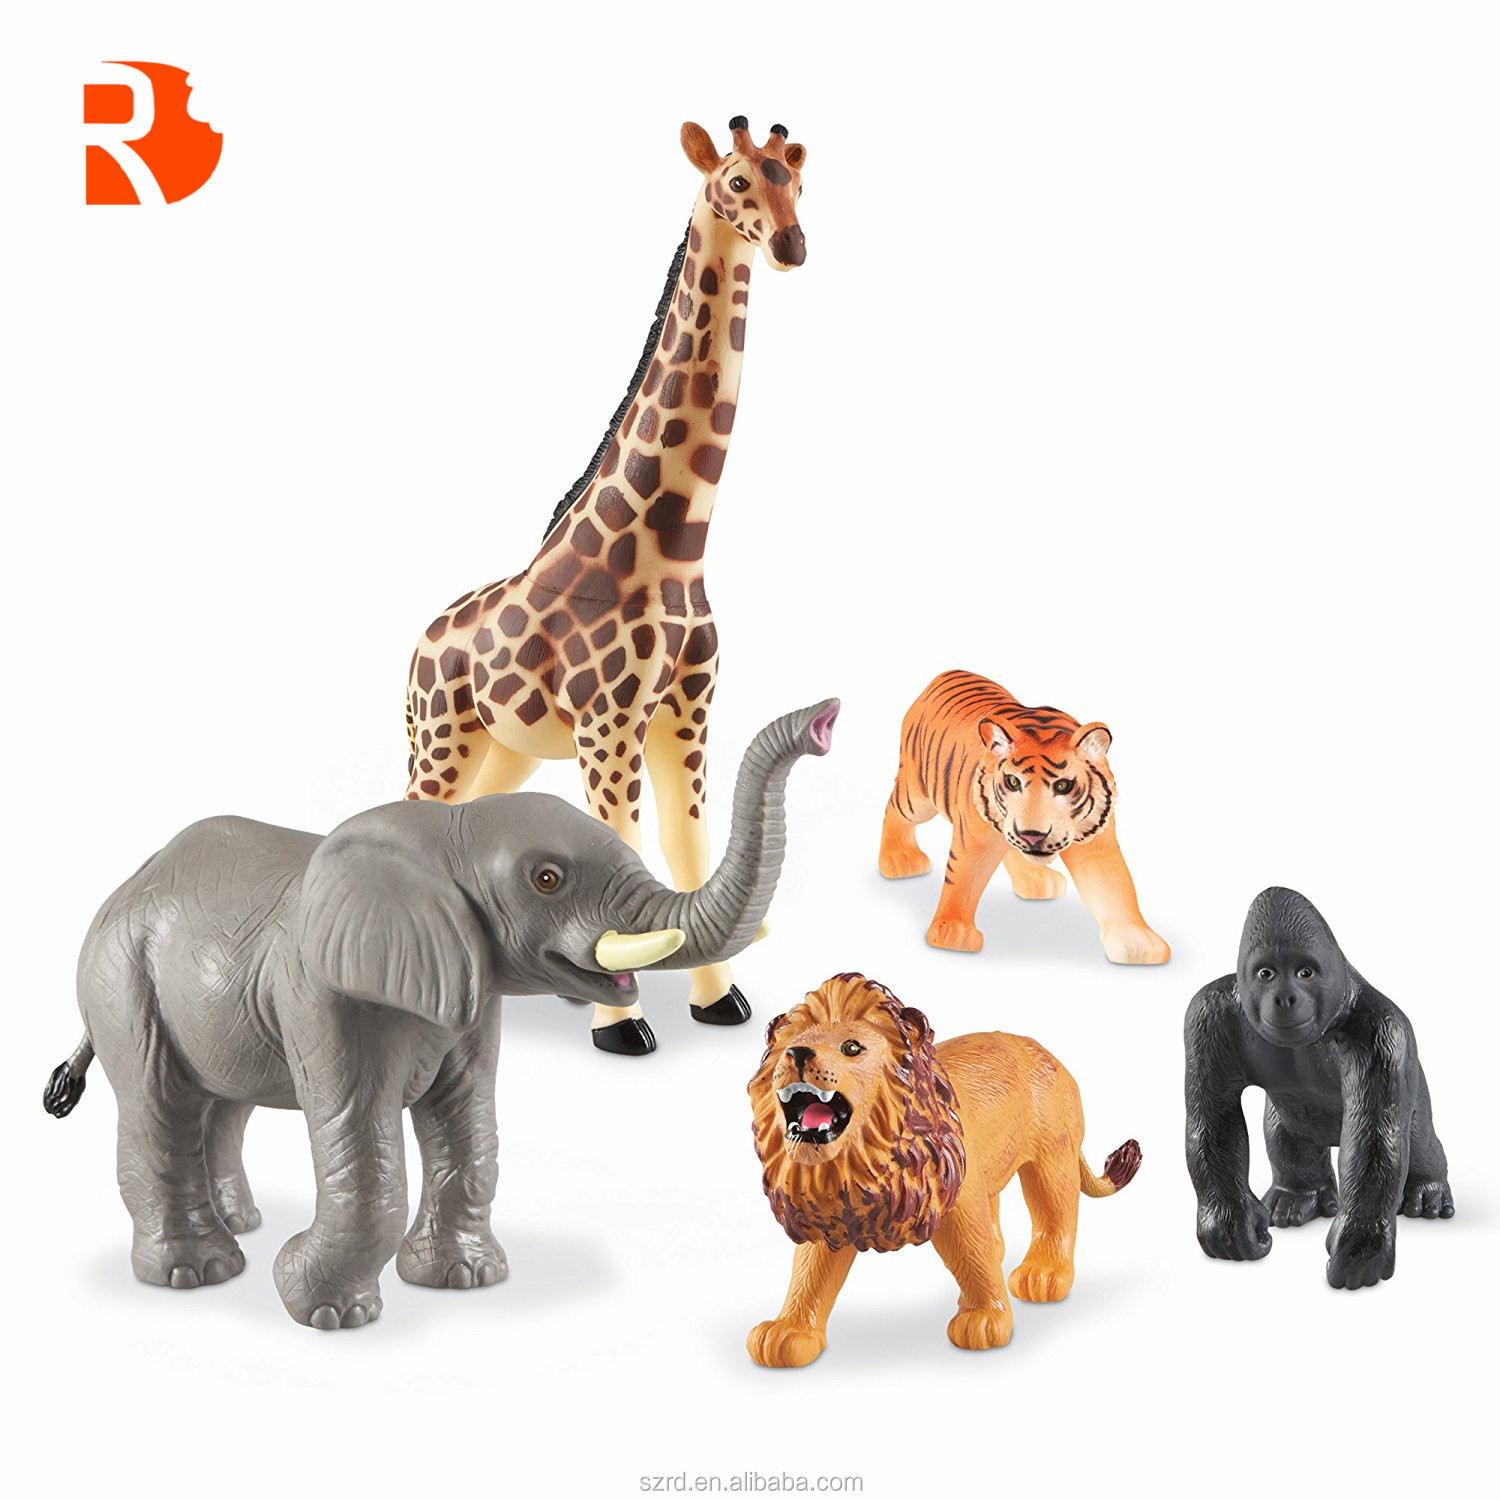 amazoncom animal figure8 inch jumbo jungle animal toy - 1000×1000